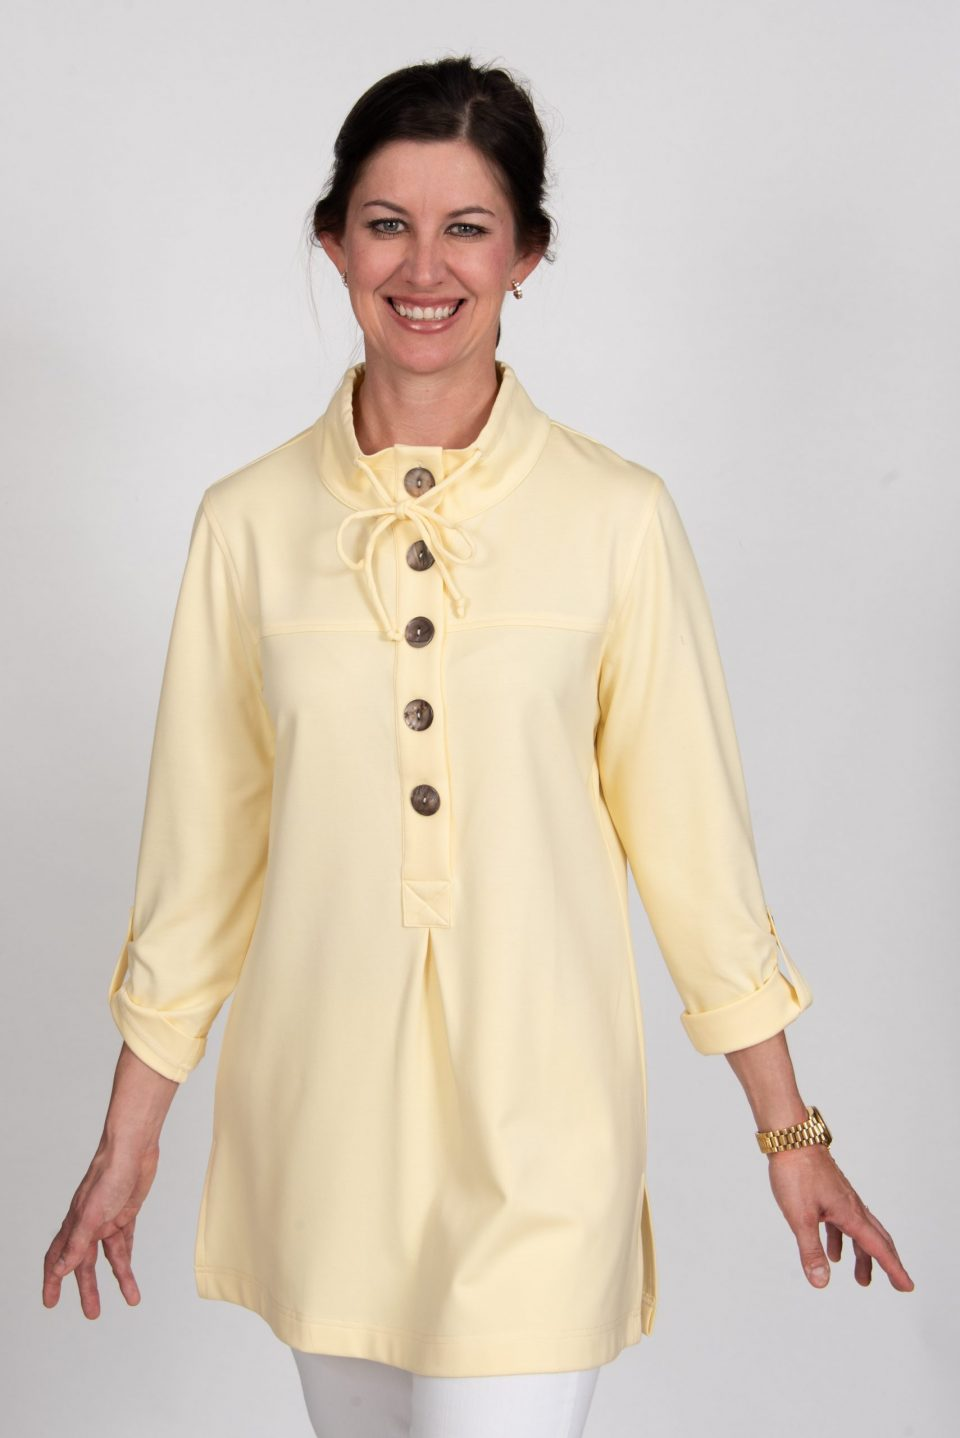 Five Button Drawstring Neck Knit Tunic Yellow Front- Diane Bailey Designs